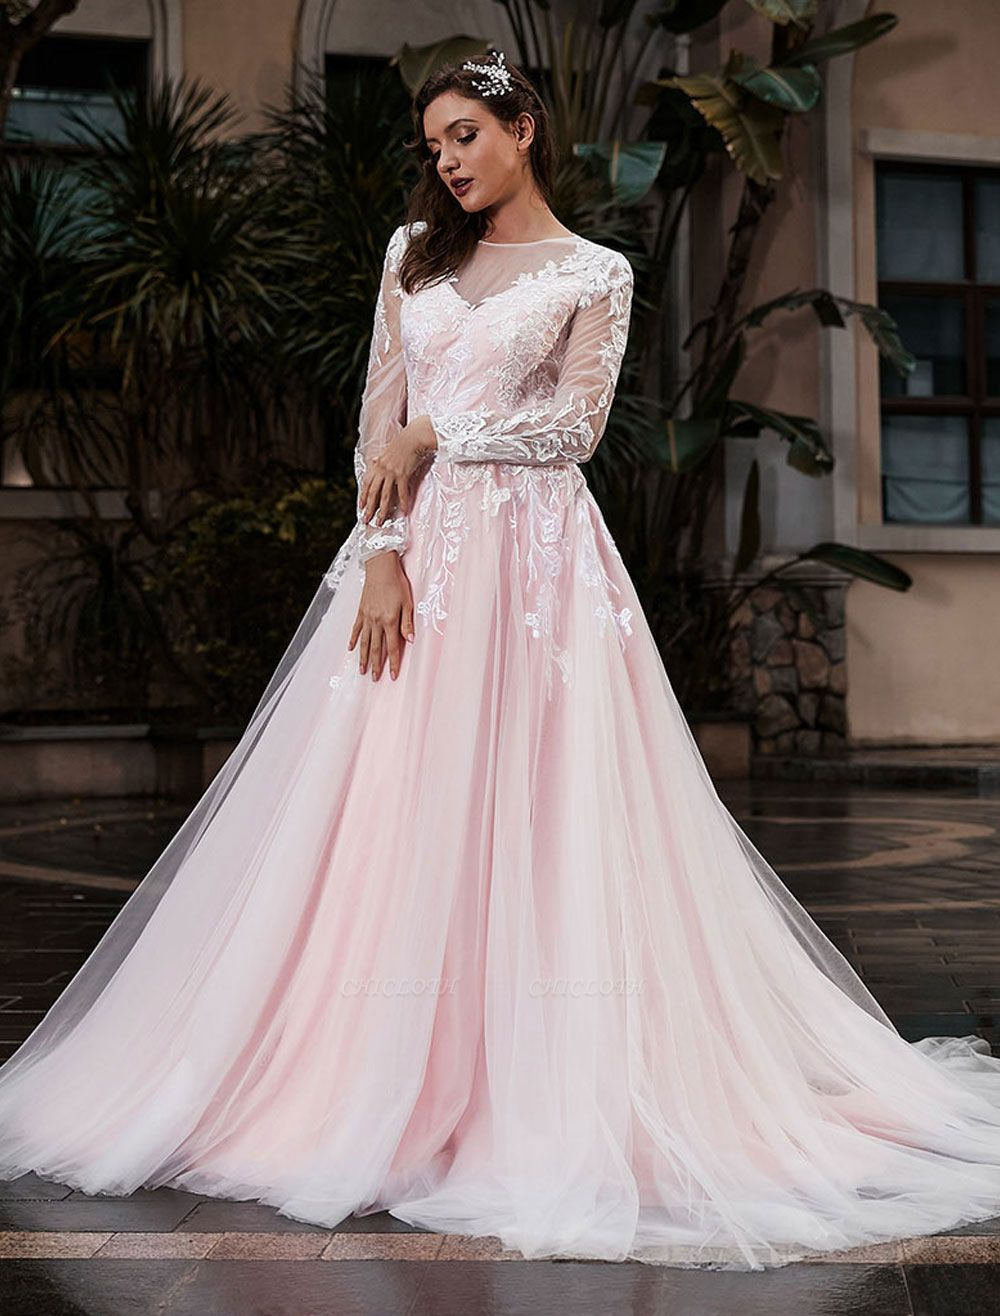 Customize Wedding Gowns With Train A-Line Long Sleeves Satin Fabric Jewel Neck Bridal Gowns